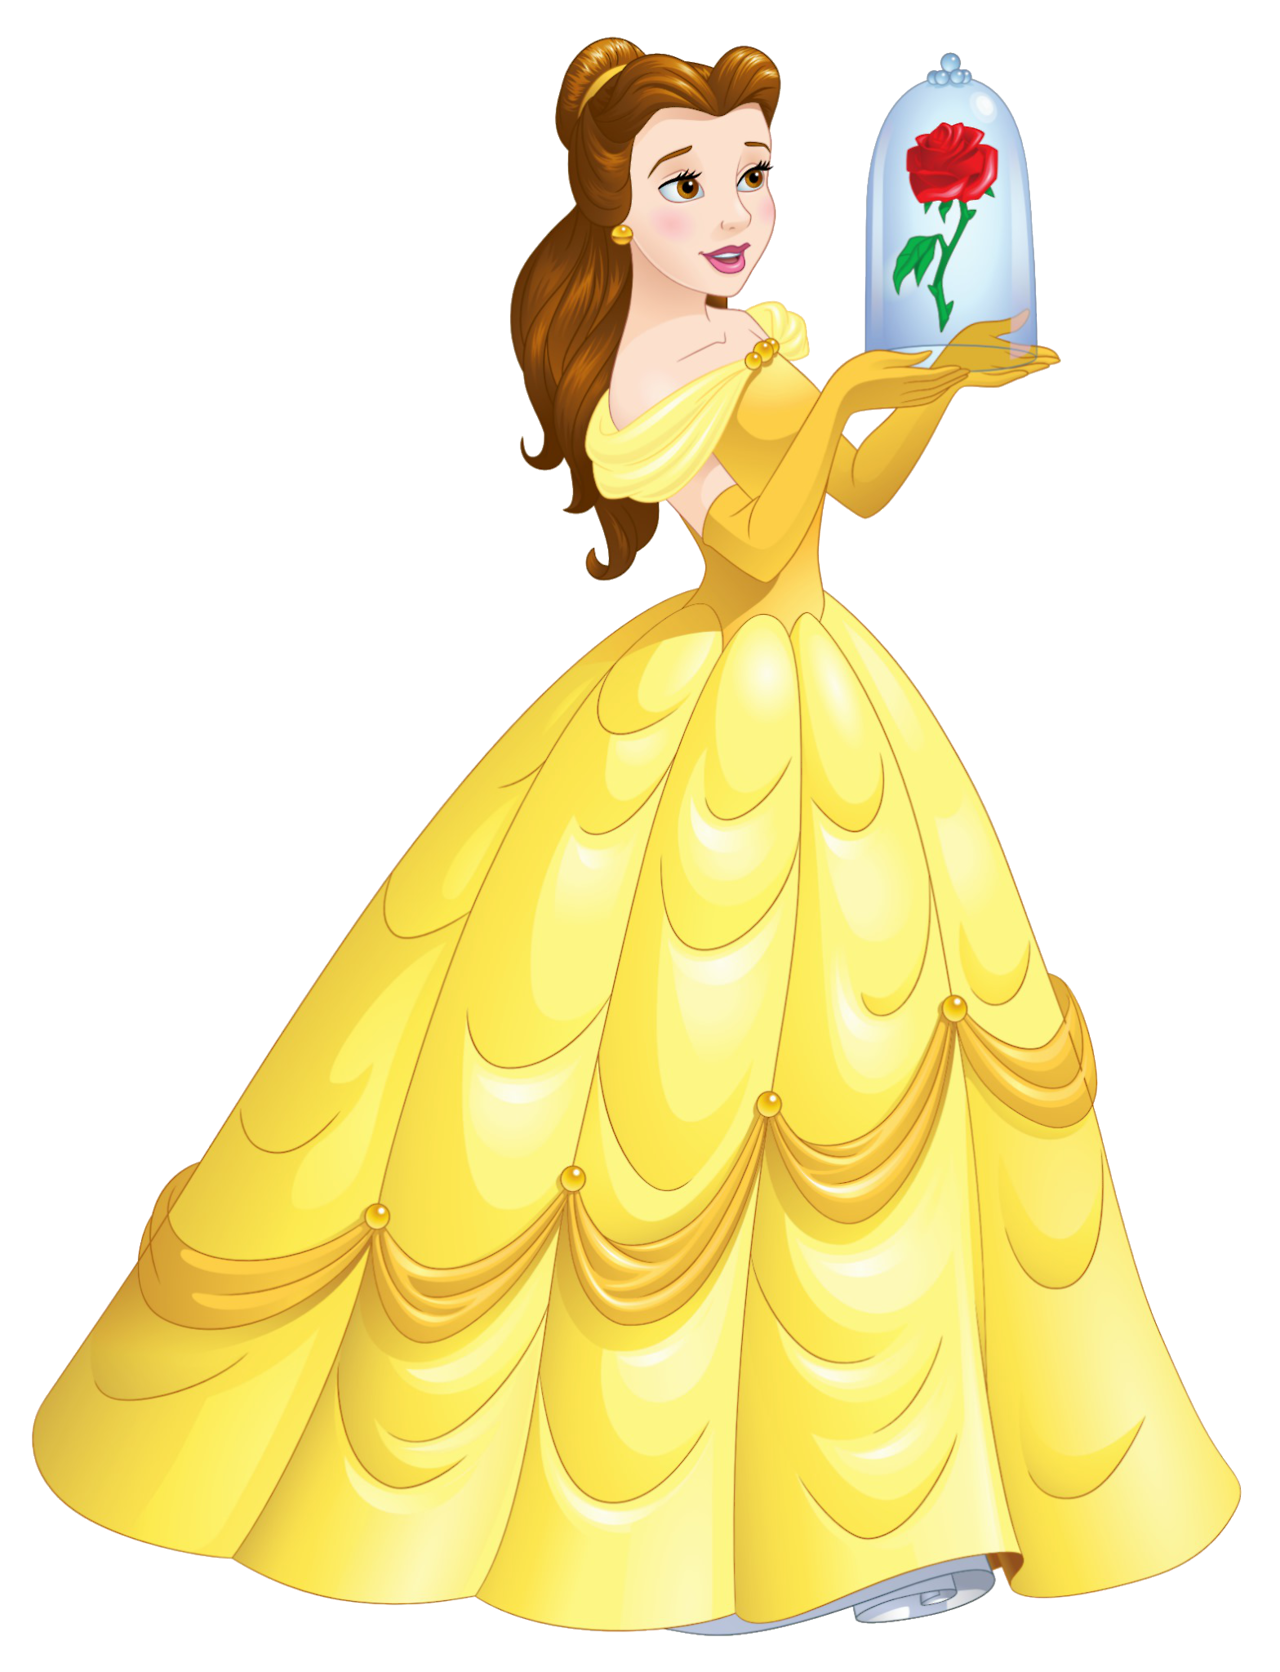 Princess belle png. Artwork en hd de